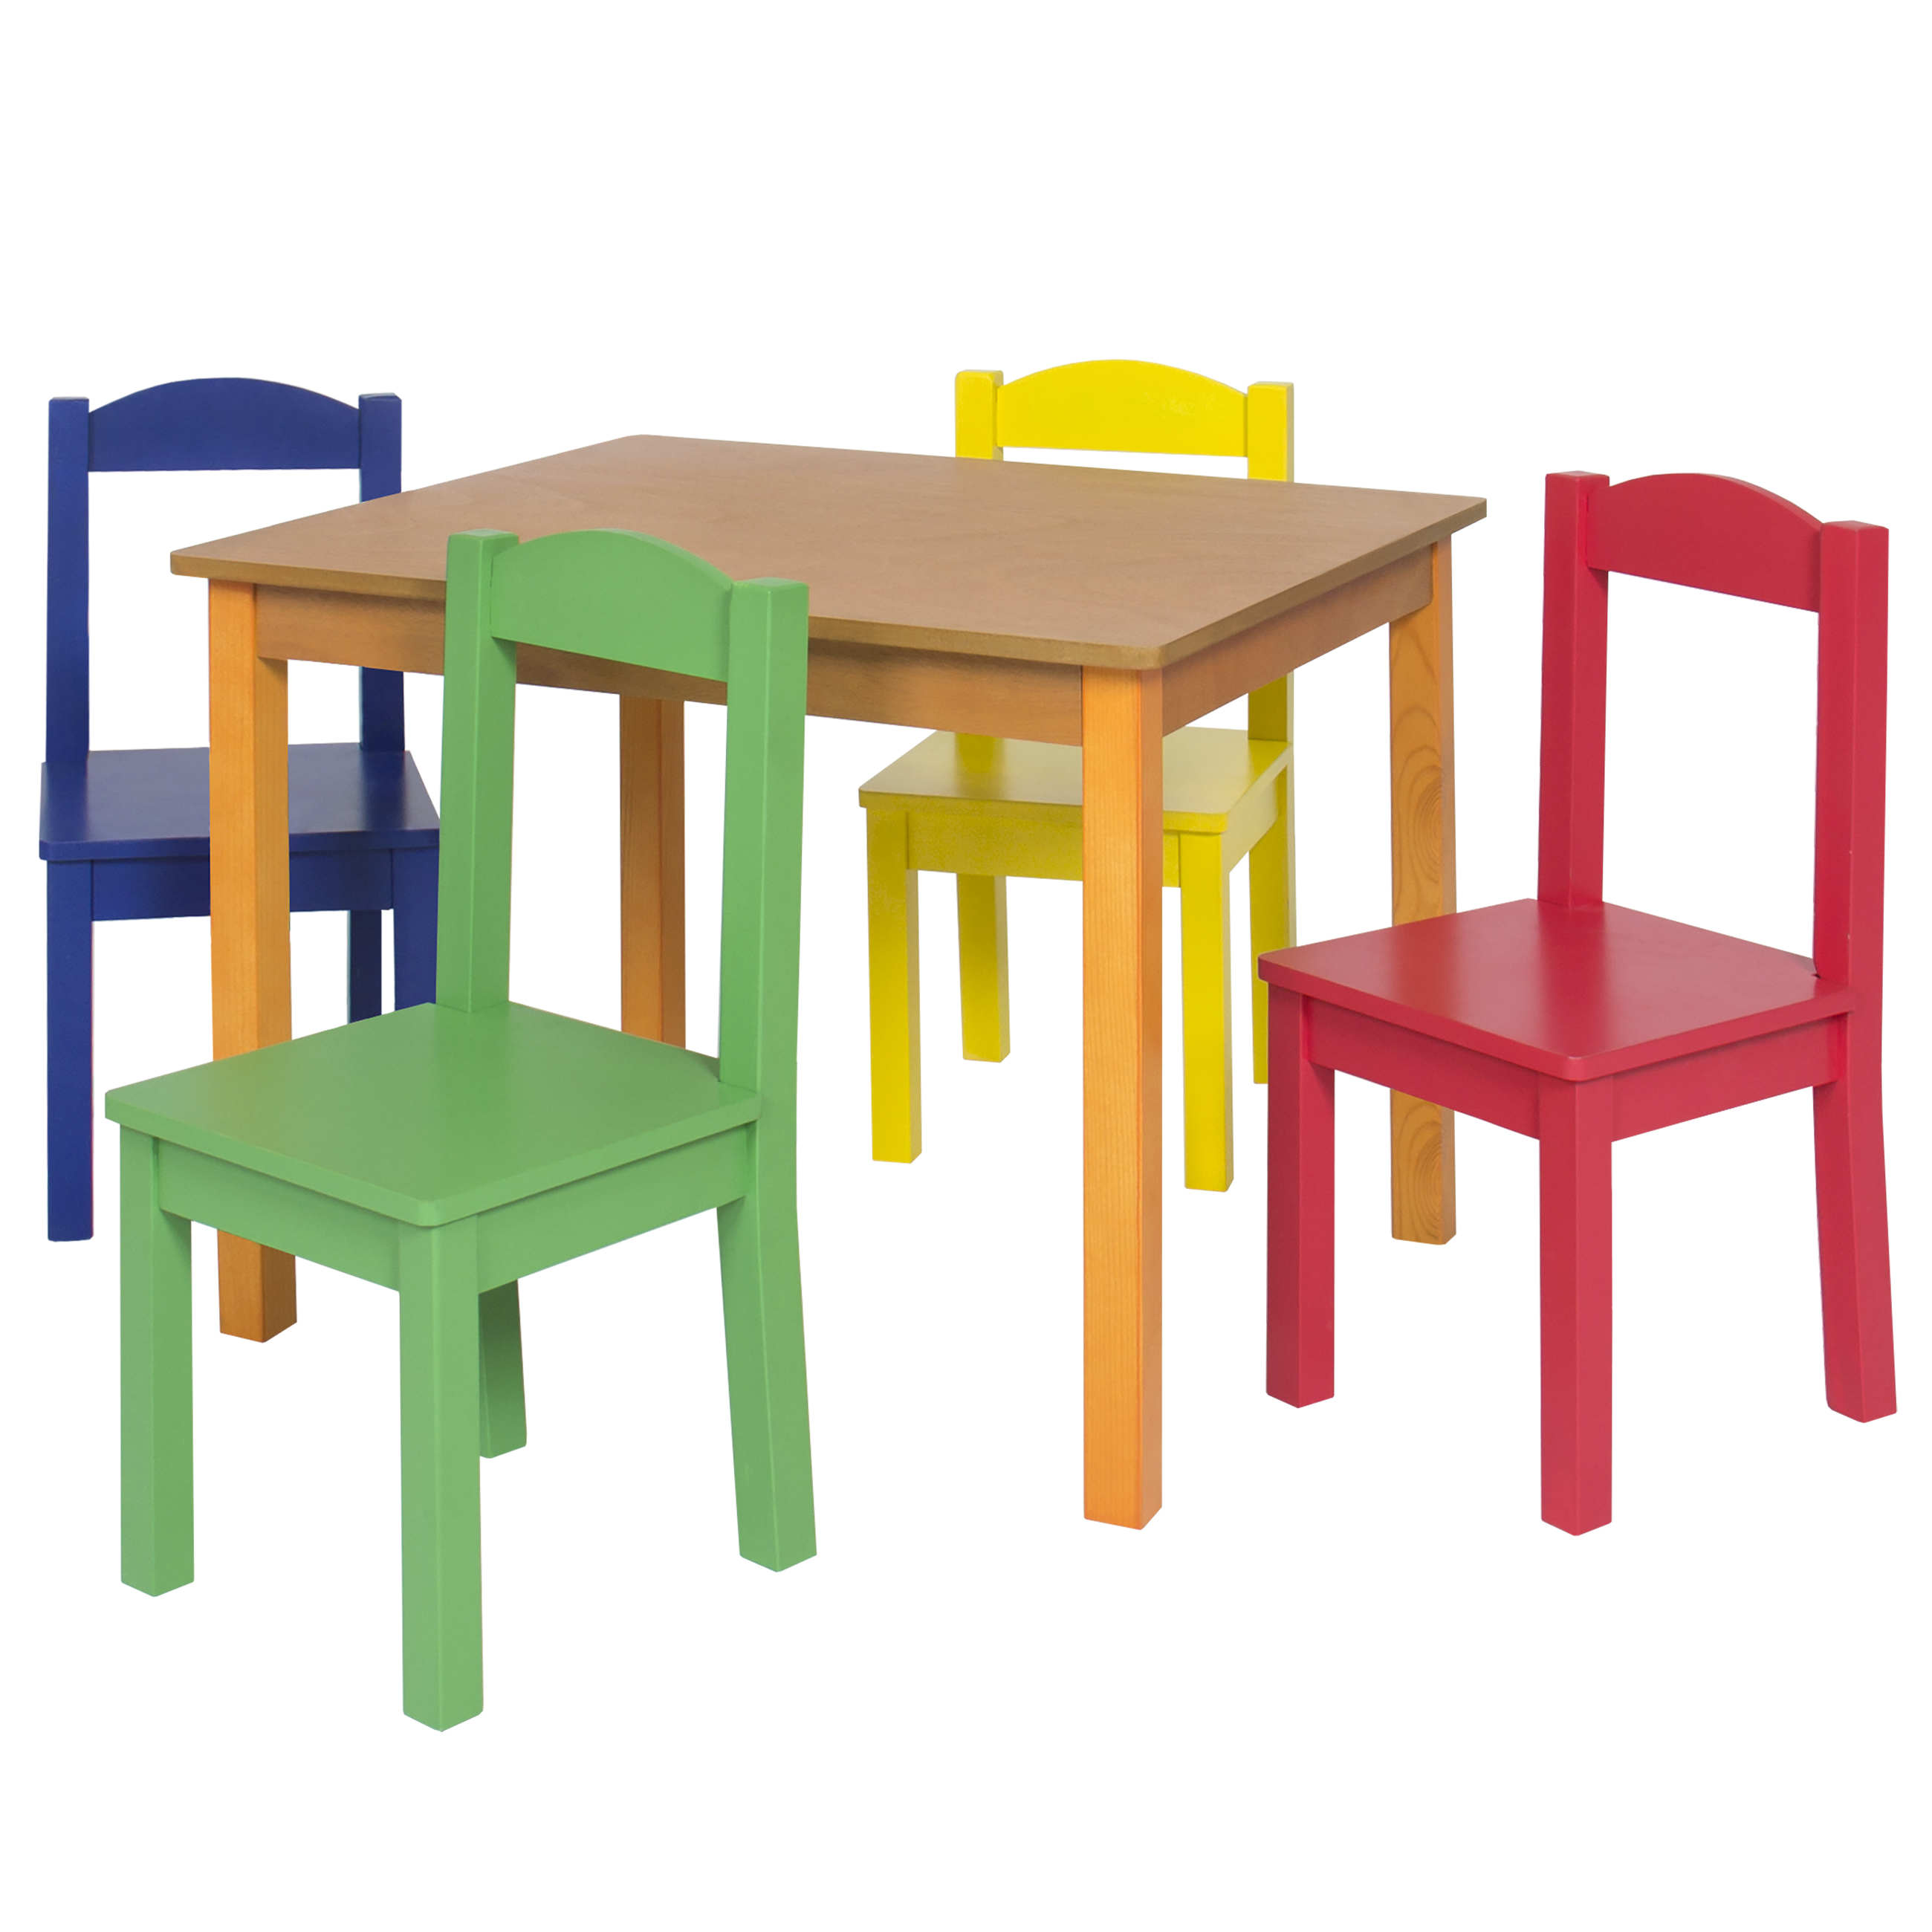 Kids Wooden Table And Chairs Kids Wooden Table And 4 Chair Set Furniture Primary